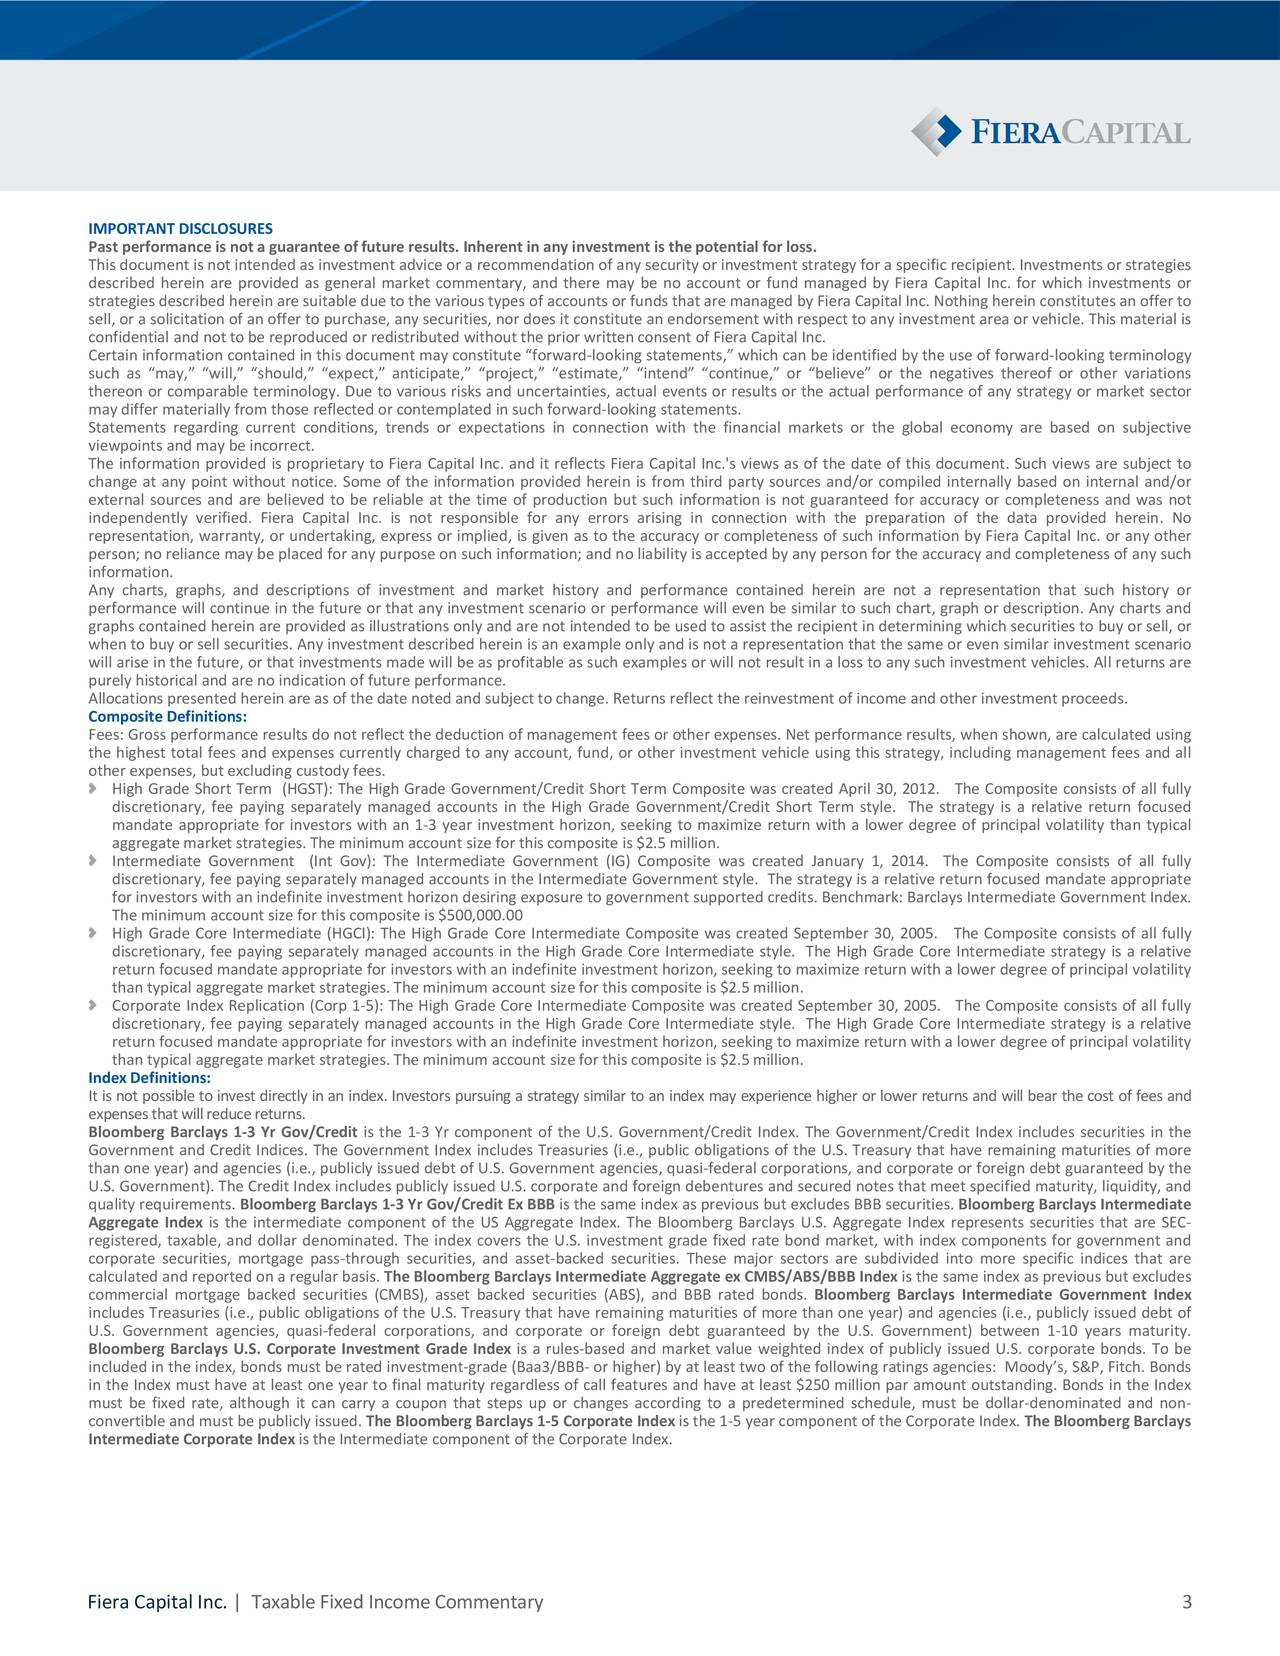 """Past performance is not a guarantee of future results. Inherent in any investment is the potential for loss. This document is not intended as investment advice or a recommendation of any security or investment strategy for a specific recipient. Investments or strategies described herein are provided as general market commentary, and there may be no account or fund managed by Fiera Capital Inc. for which investments or strategies described herein are suitable due to the various types of accounts or funds that are managed by Fiera Capital Inc. Nothing herein constitutes an offer to sell, or a solicitation of an offer to purchase, any securities, nor does it constitute an endorsement with respect to any investment area or vehicle. This material is confidential and not to be reproduced or redistributed without the prior written consent of Fiera Capital Inc. Certaininformationcontainedinthi s document may constitute """"forward‐looking statements,"""" which can be identified by the use of forward‐lookingterminology such as """"may,"""" """"will,"""" """"should,"""" """"expec"""" t,tiiatt,""""estoe imate,"""" """"intend"""" """"continue,"""" or """"believe"""" or the negatives thereof or other variations thereon or comparable terminology. Due to various risks and uncertainties, actual events or results or the actual performance of any strategy or market sector may differ materially from those reflected or contemplated in such forward‐looking statements. Statements regarding current conditions, trends or expectations in connection with the financial markets or the global economy are based on subjective viewpoints and may be incorrect. The information provided is proprietary to Fiera Capital Inc. and it reflects Fiera Capital Inc.'s views as of the date of this document. Such views are subject to change at any point without notice. Some of the information provided herein is from third party sources and/or compiled internally based on internal and/or external sources and are believed to be reliable at the time of production but"""